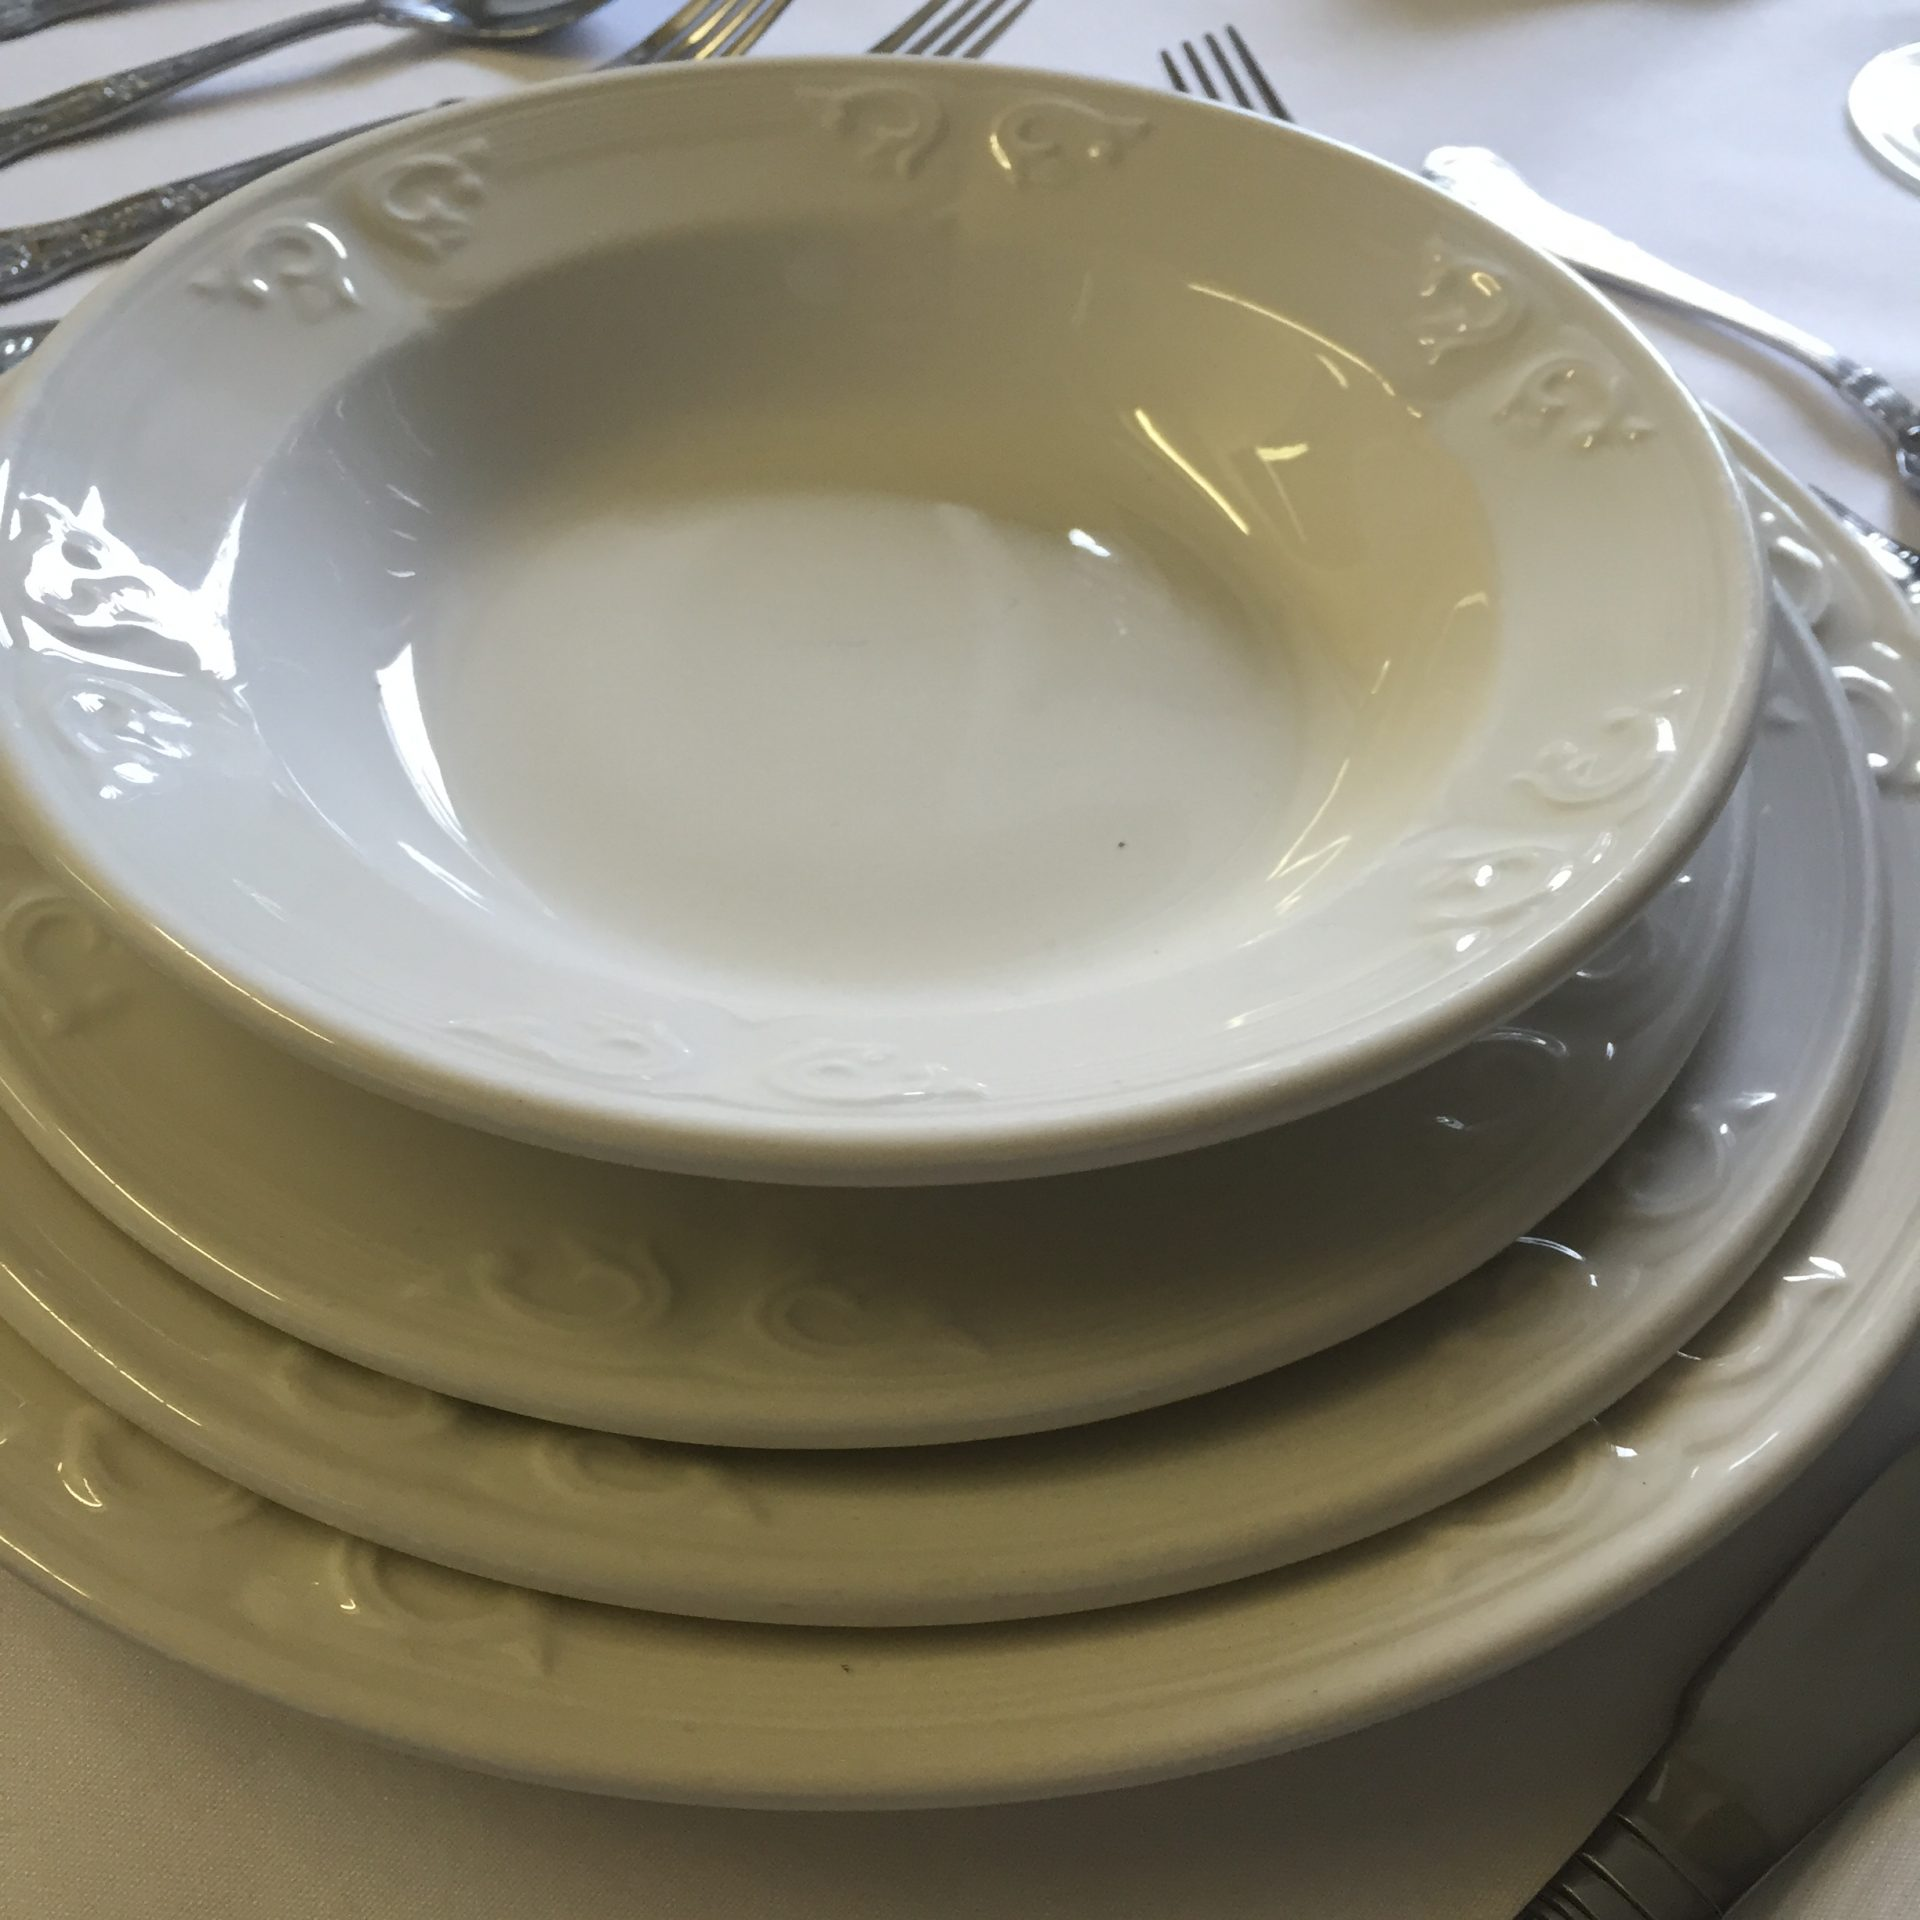 Aspen Soup Plate stack. Evolution Crockery & Crockery hire for weddings parties and events in Northern Ireland